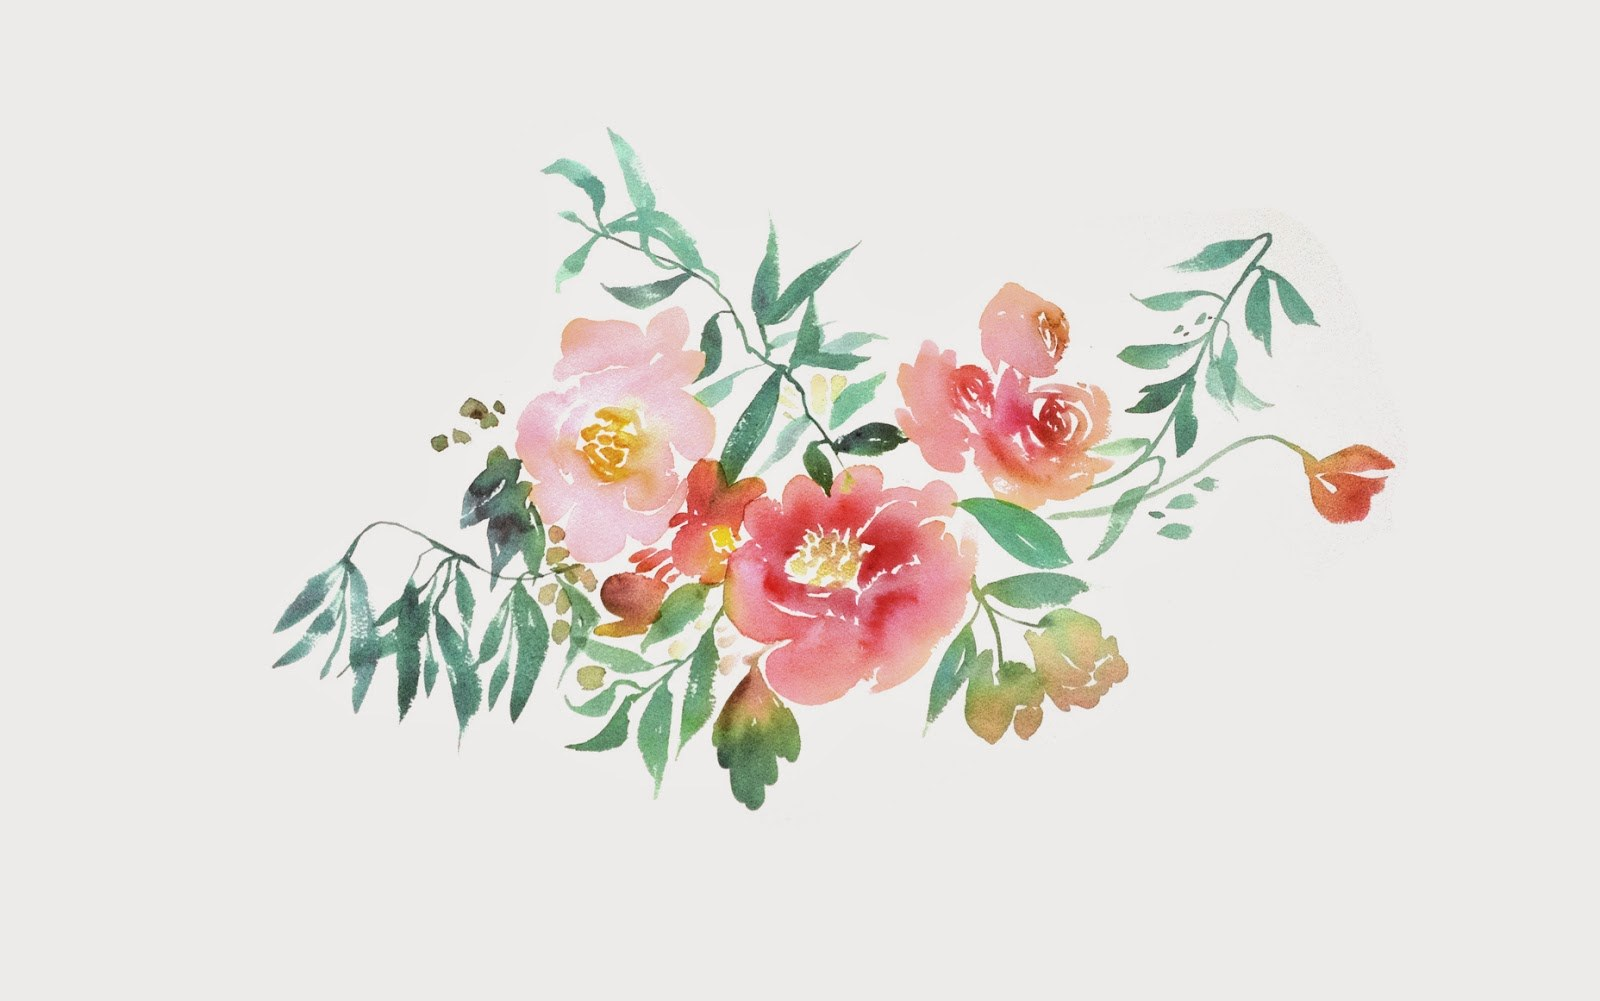 Watercolor Flora2 by Julie Song Ink1 2